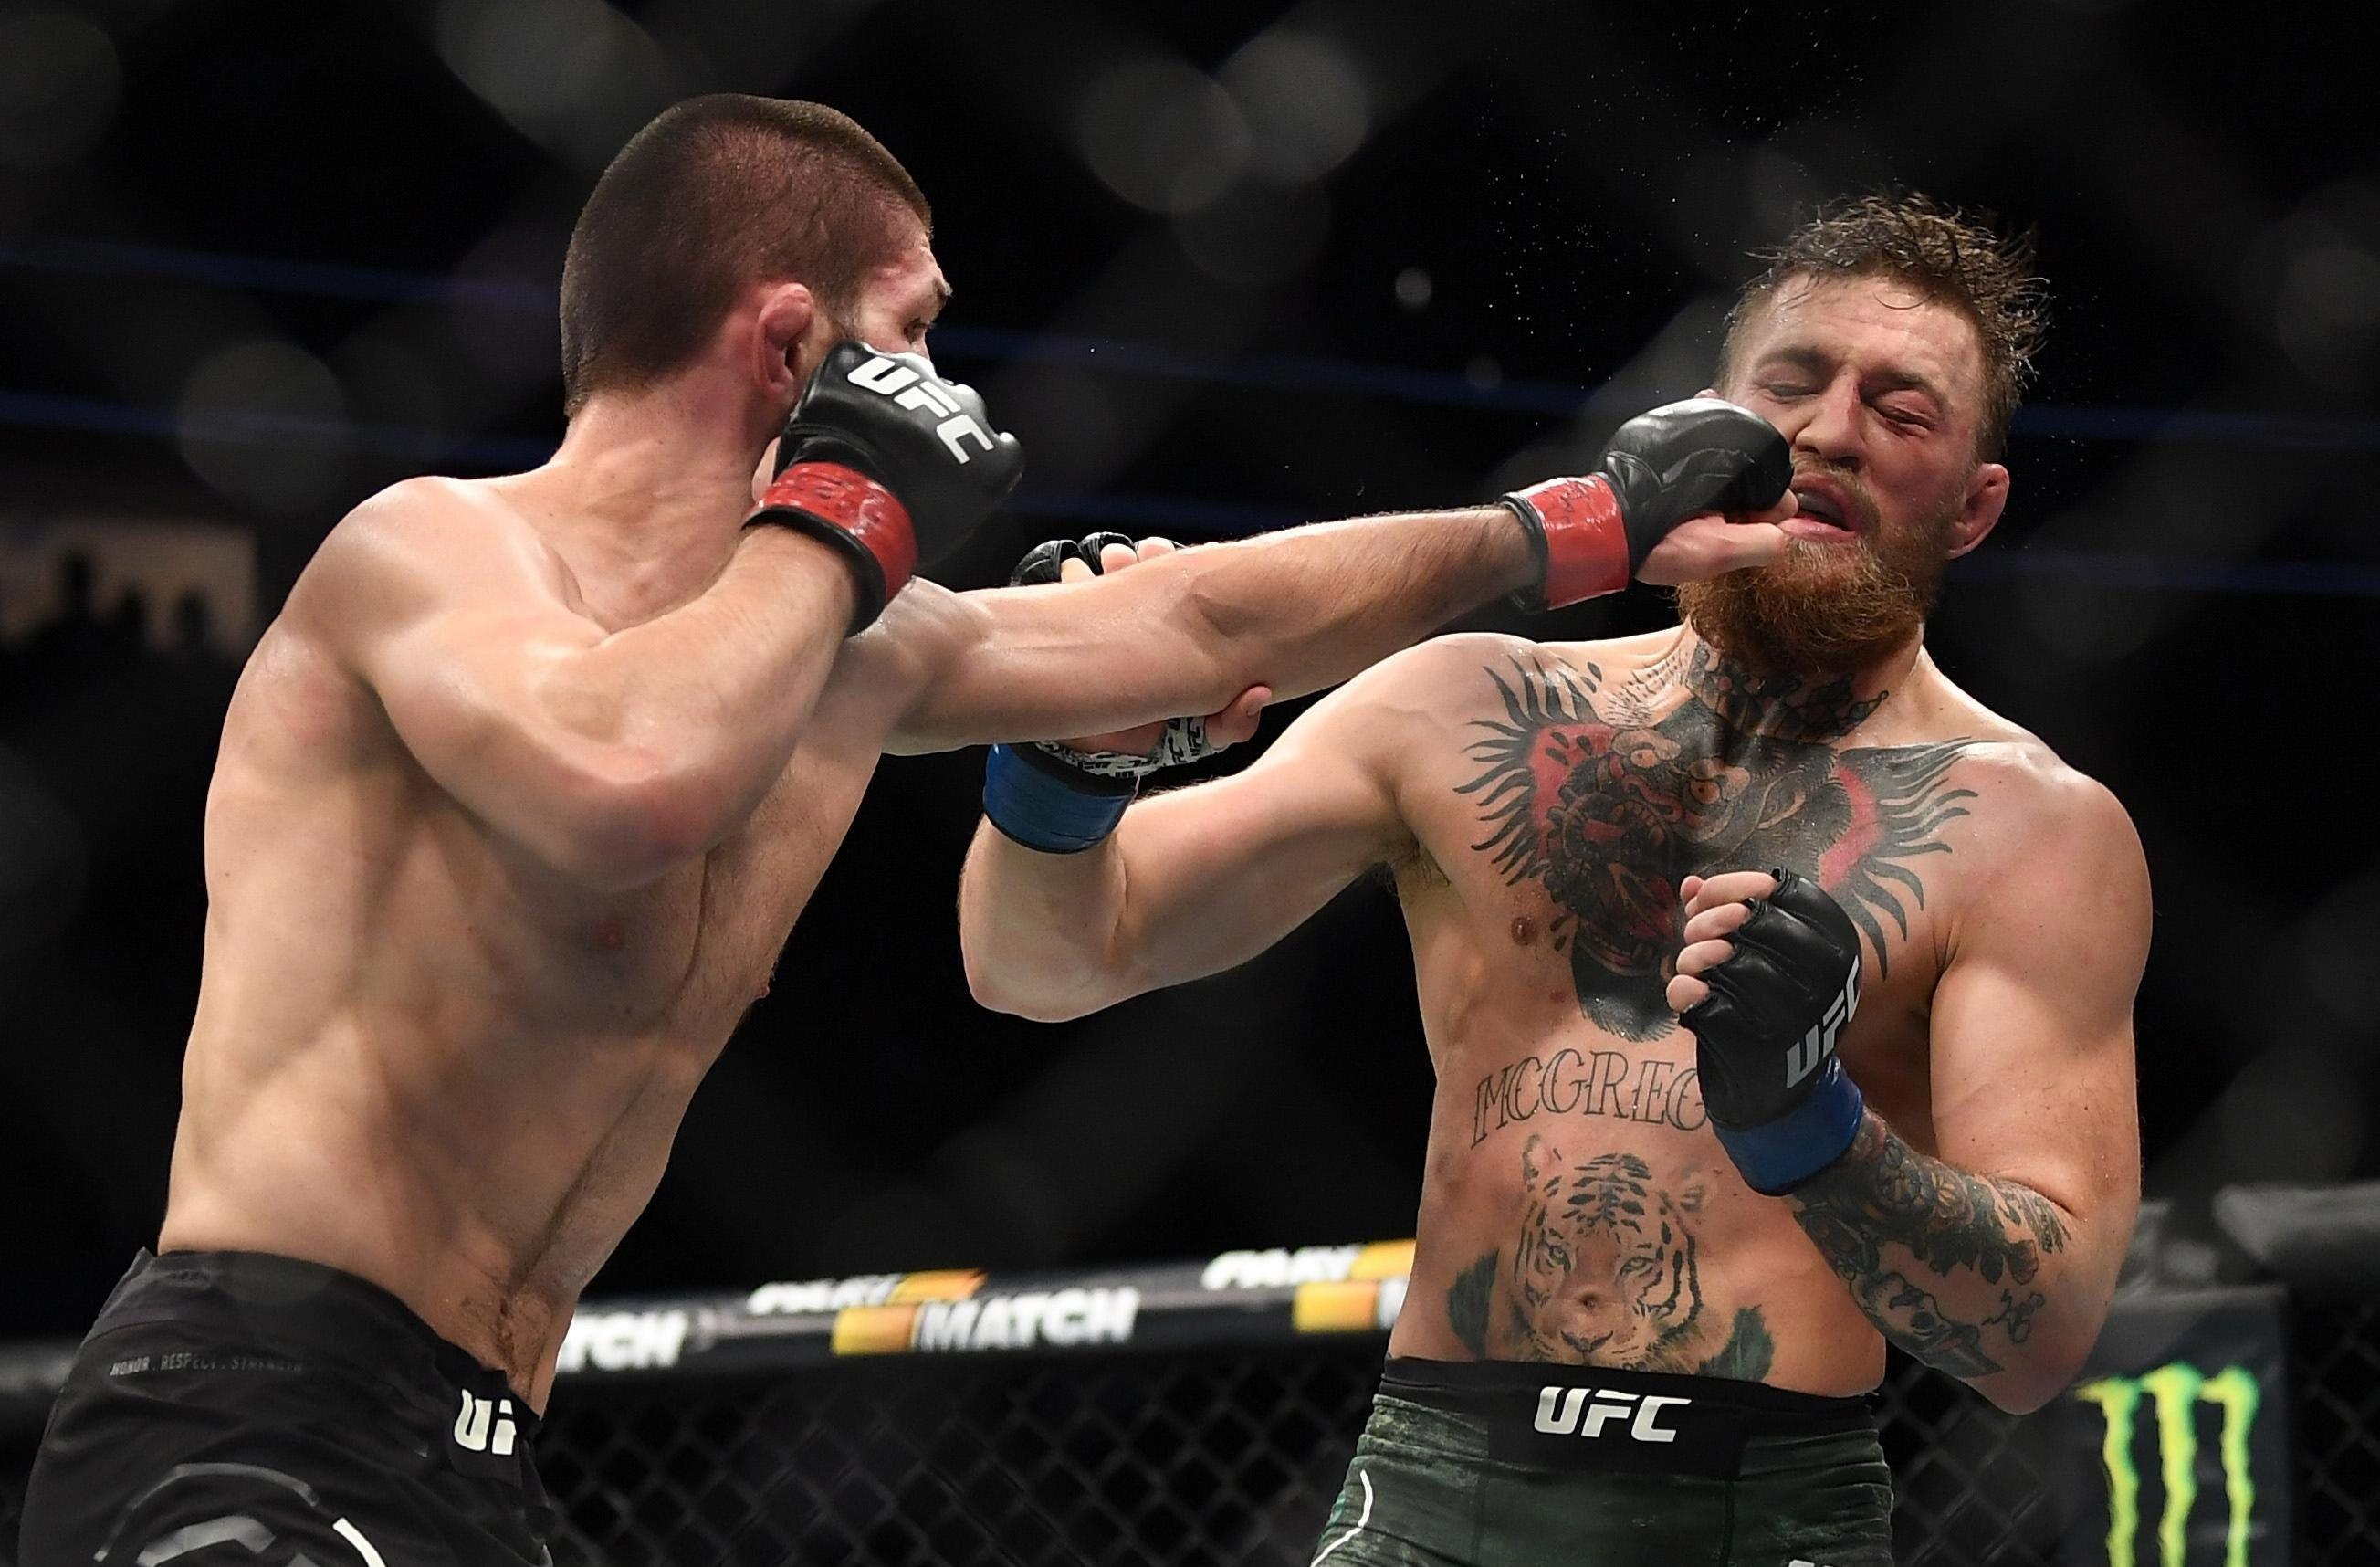 The UFC fight was followed by a mass brawl which saw Khabib jump out of the ring